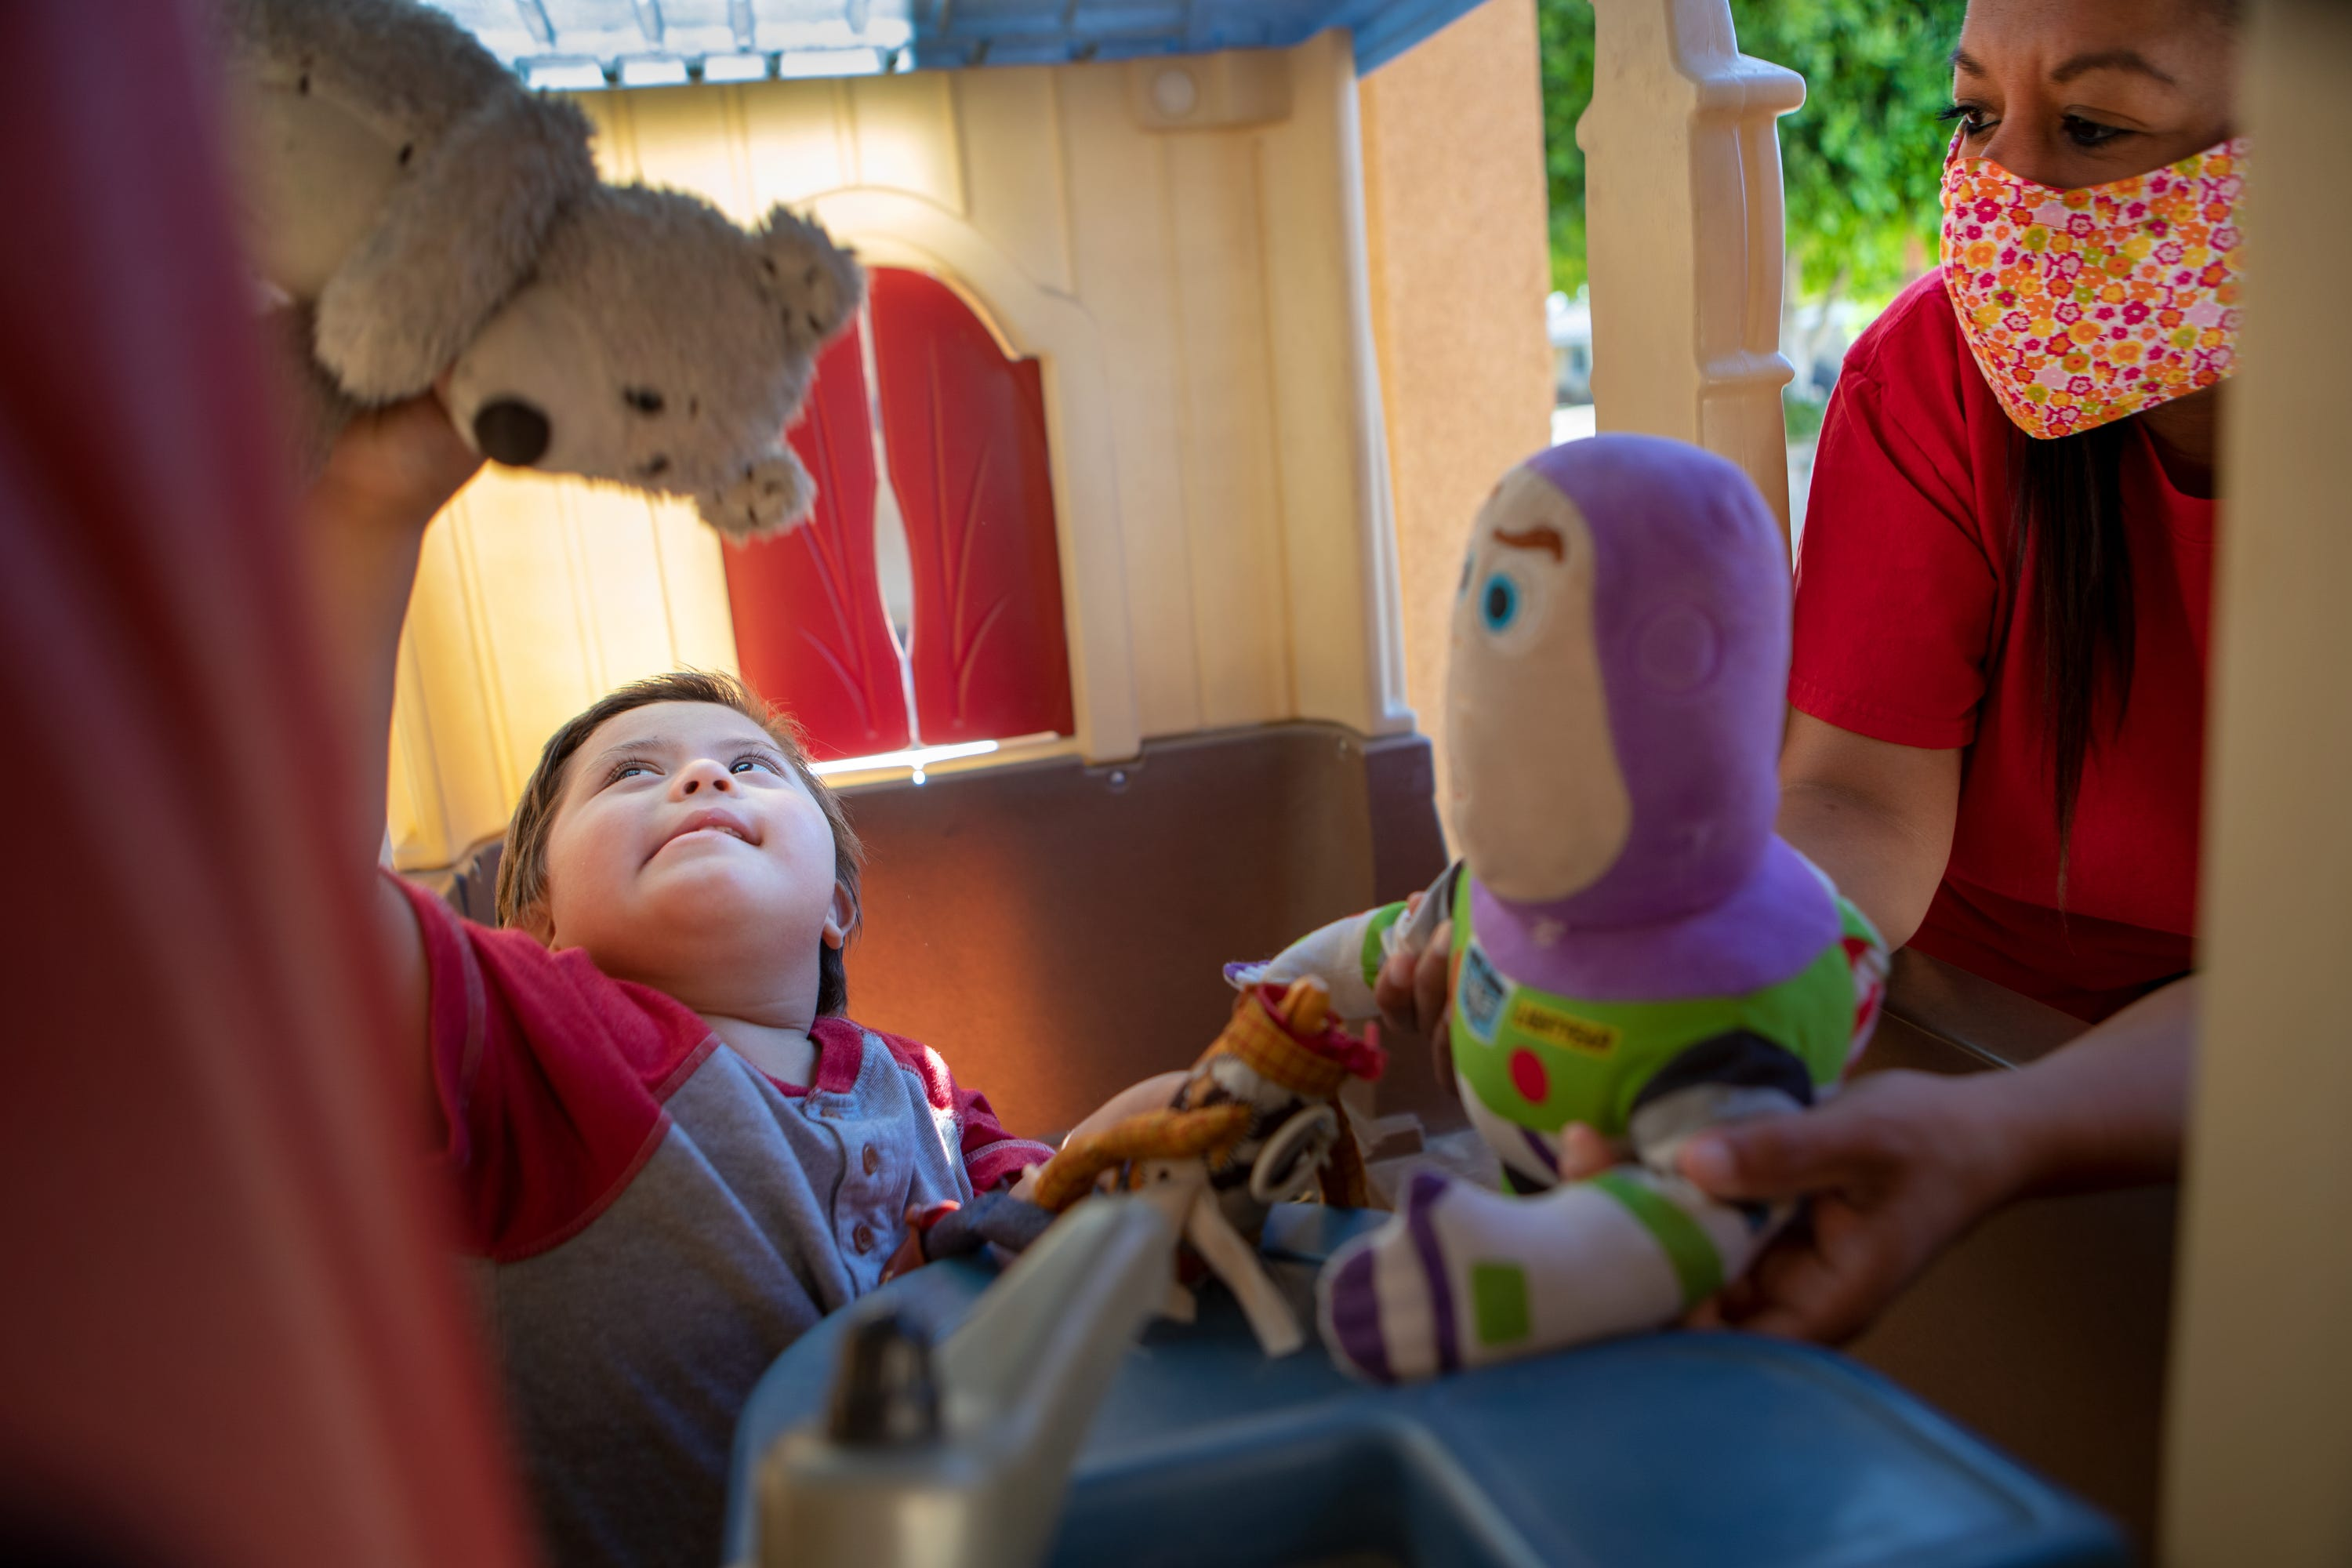 United Cerebral Palsy respite worker Yanira Regla plays with four-year-old Ezekiel Regla-Cuevas outside his home in Coachella, Calif., on Thursday, April 16, 2020. Regla currently has three clients that she sees for a total of twenty-four hours a month.